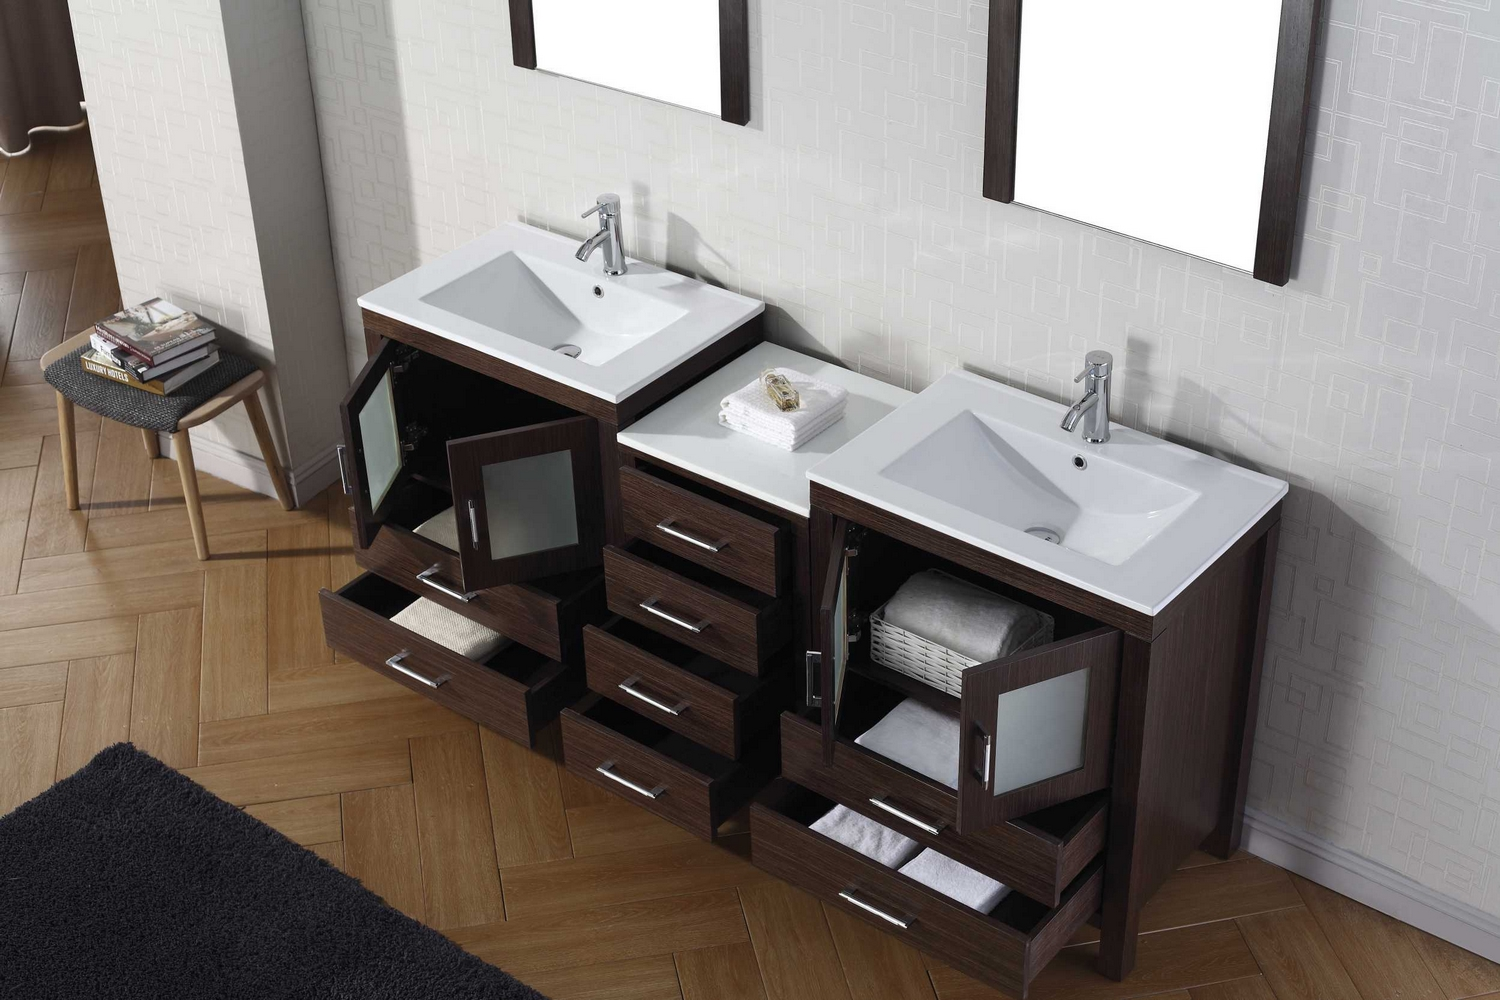 Virtu Usa Dior 74 Double Bathroom Vanity Cabinet Set In